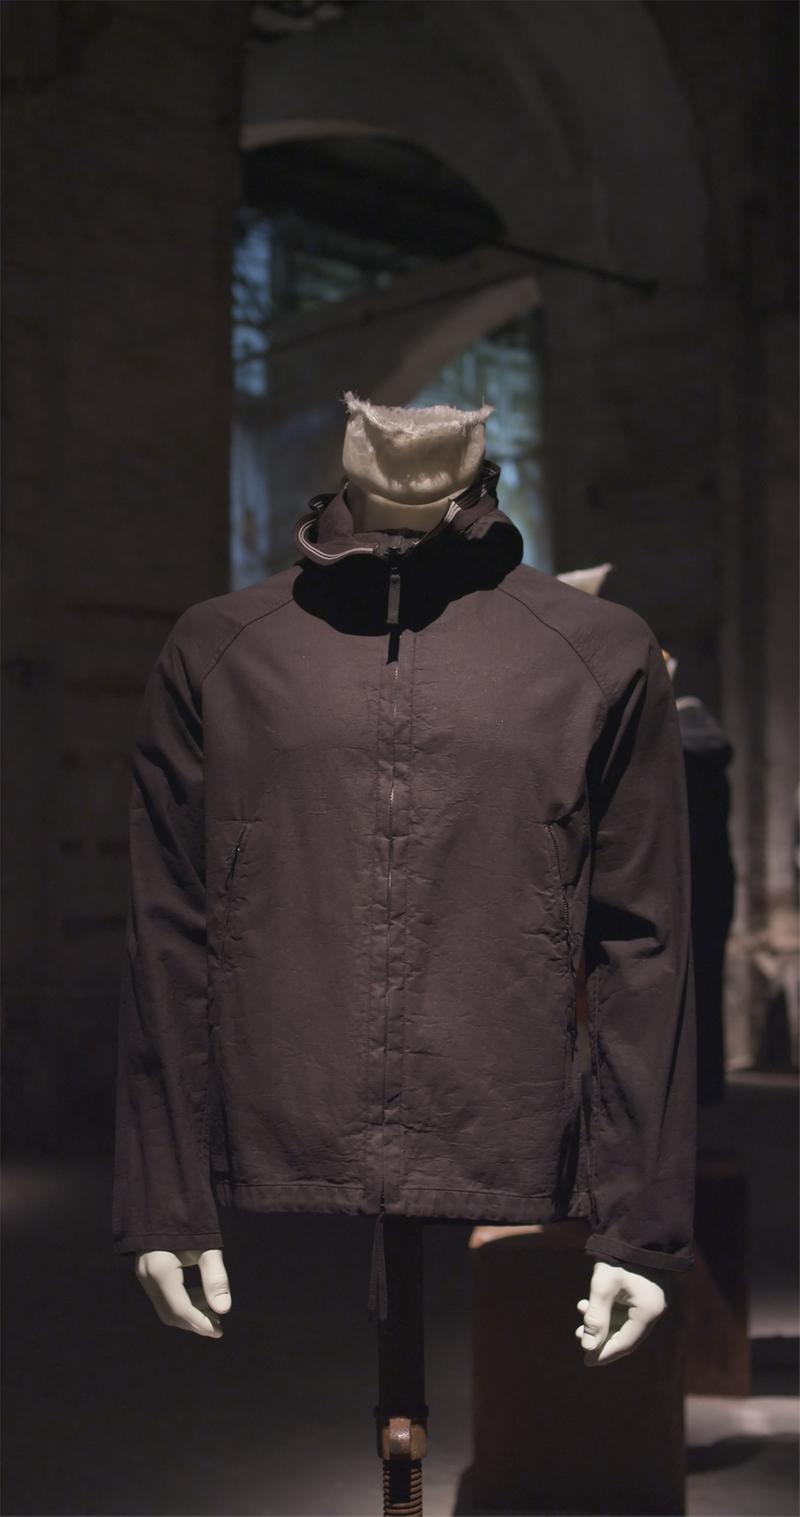 Dark jacket with high collar and zipper down the front displayed on mannequin bust